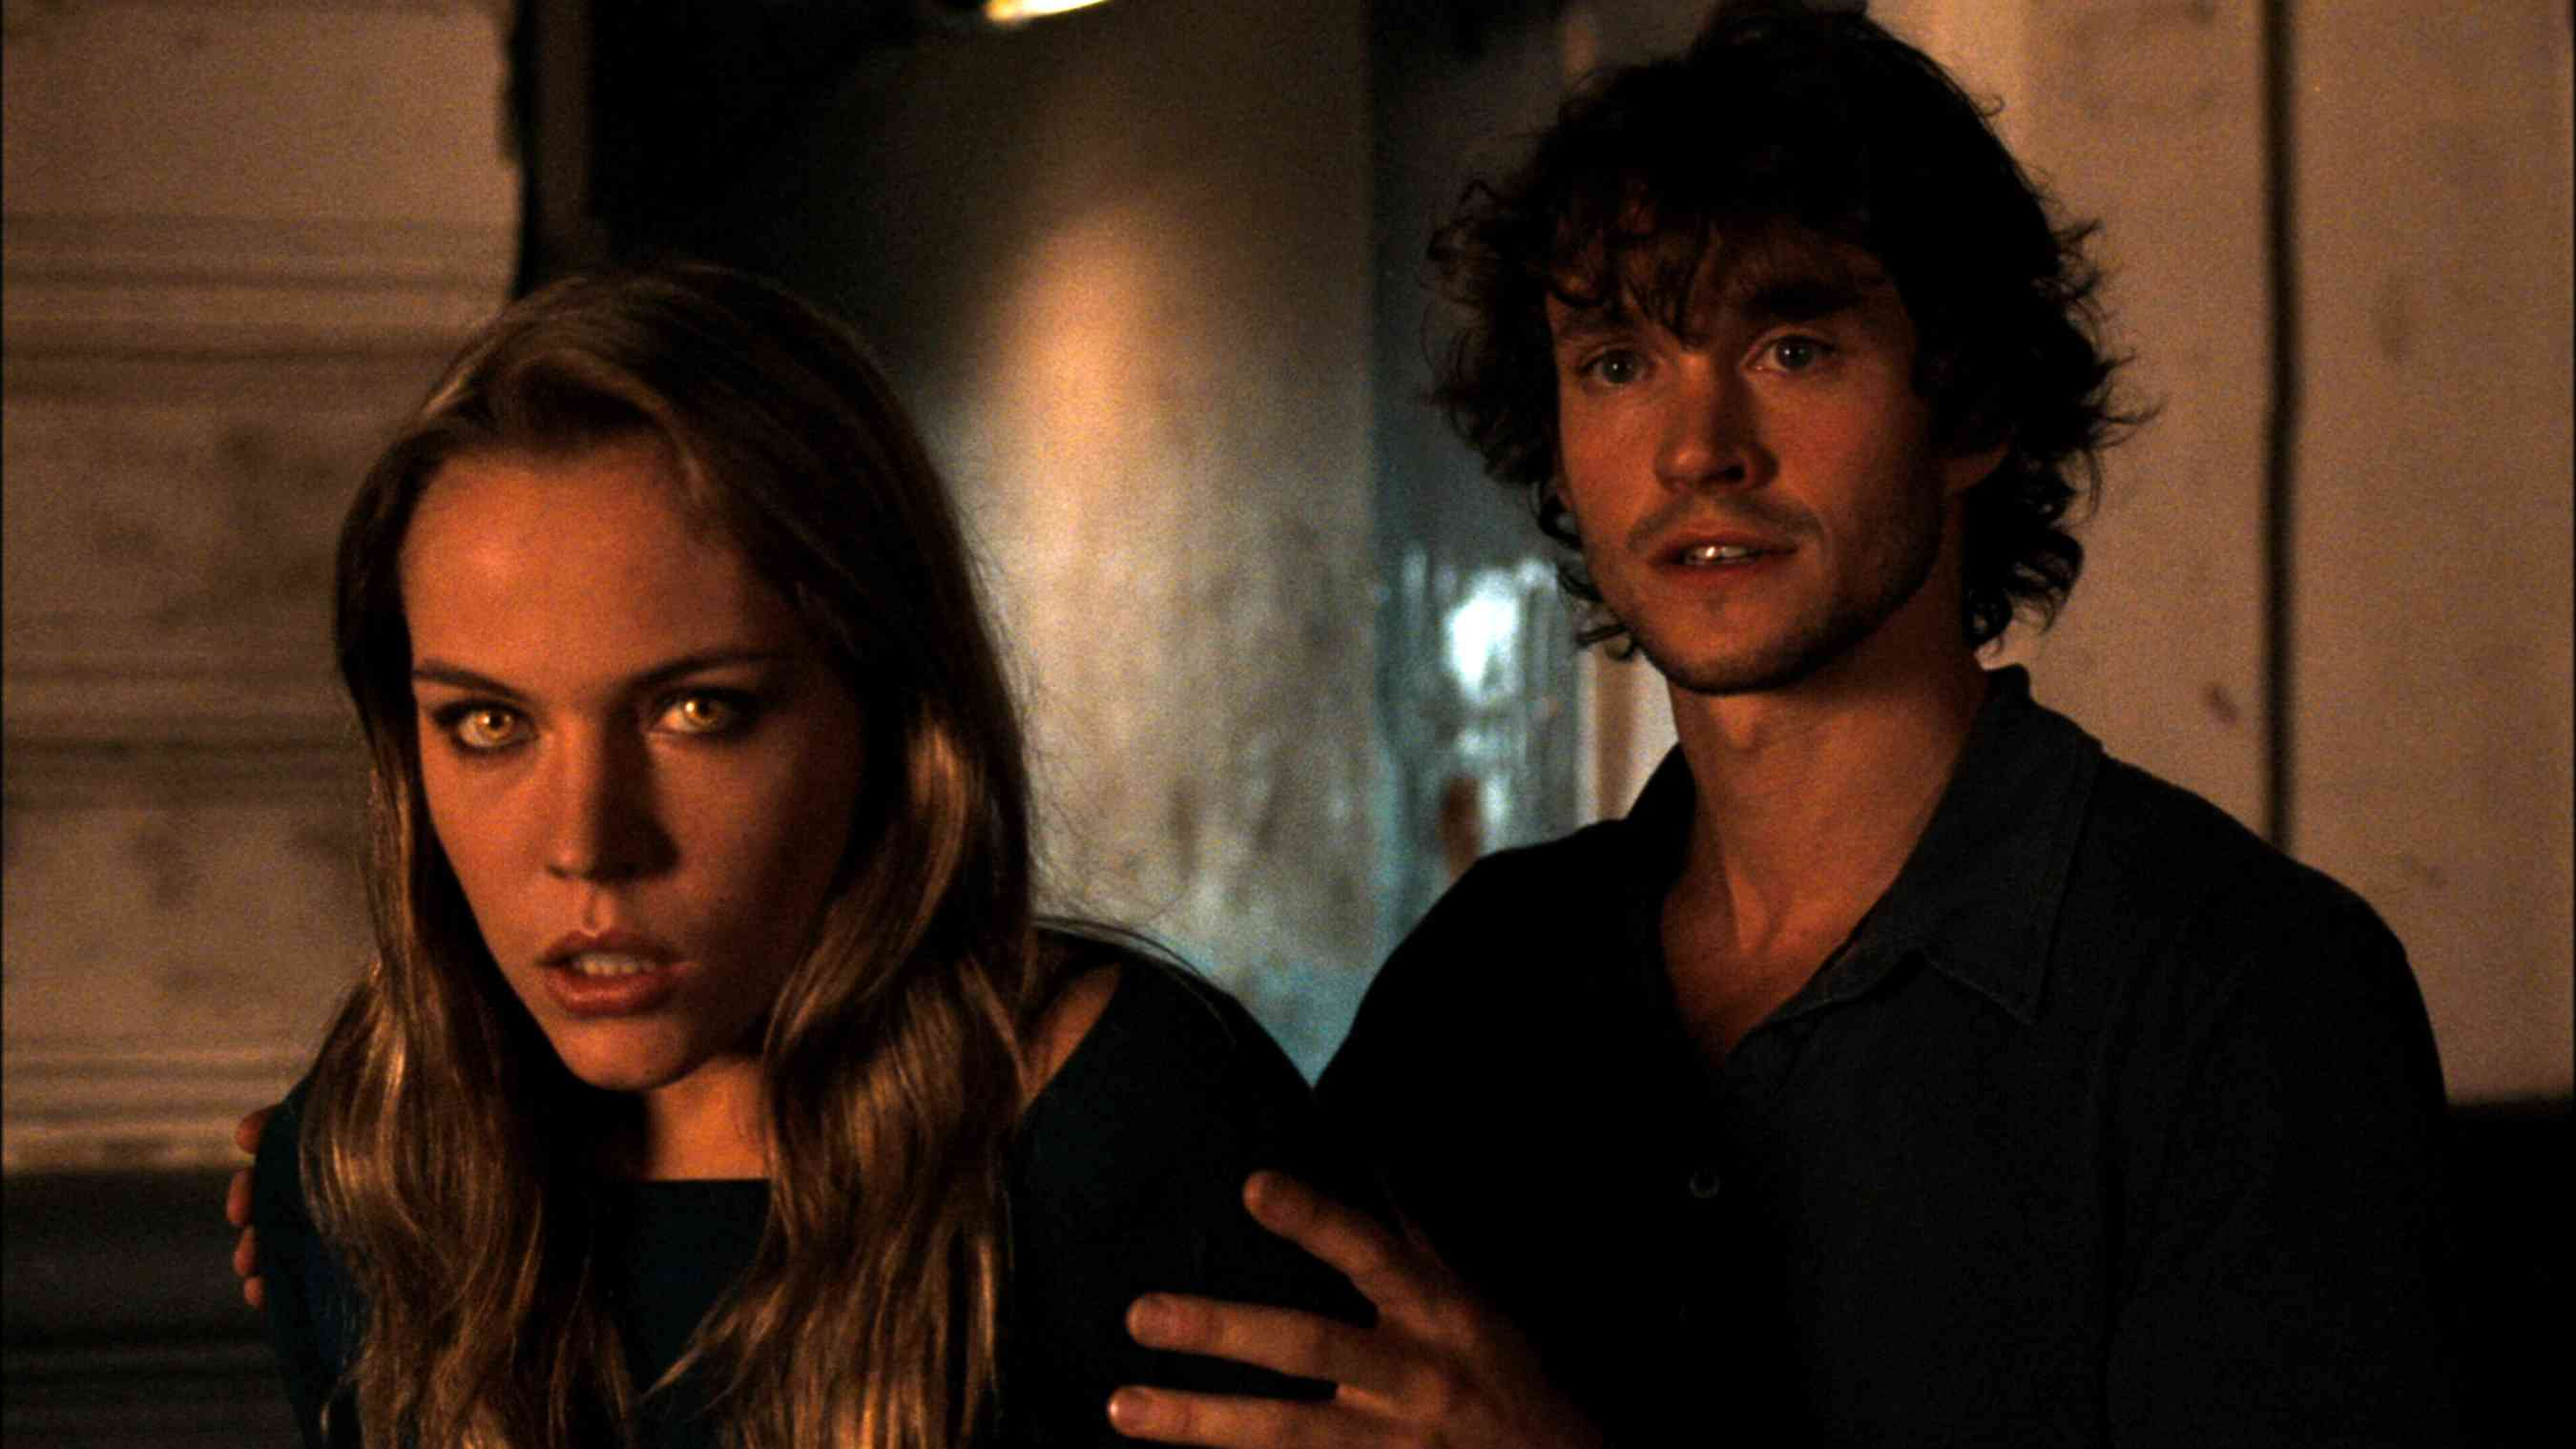 Werewolf Agnes Bruckner and human companion Hugh Dancy in Blood and Chocolate (2007)